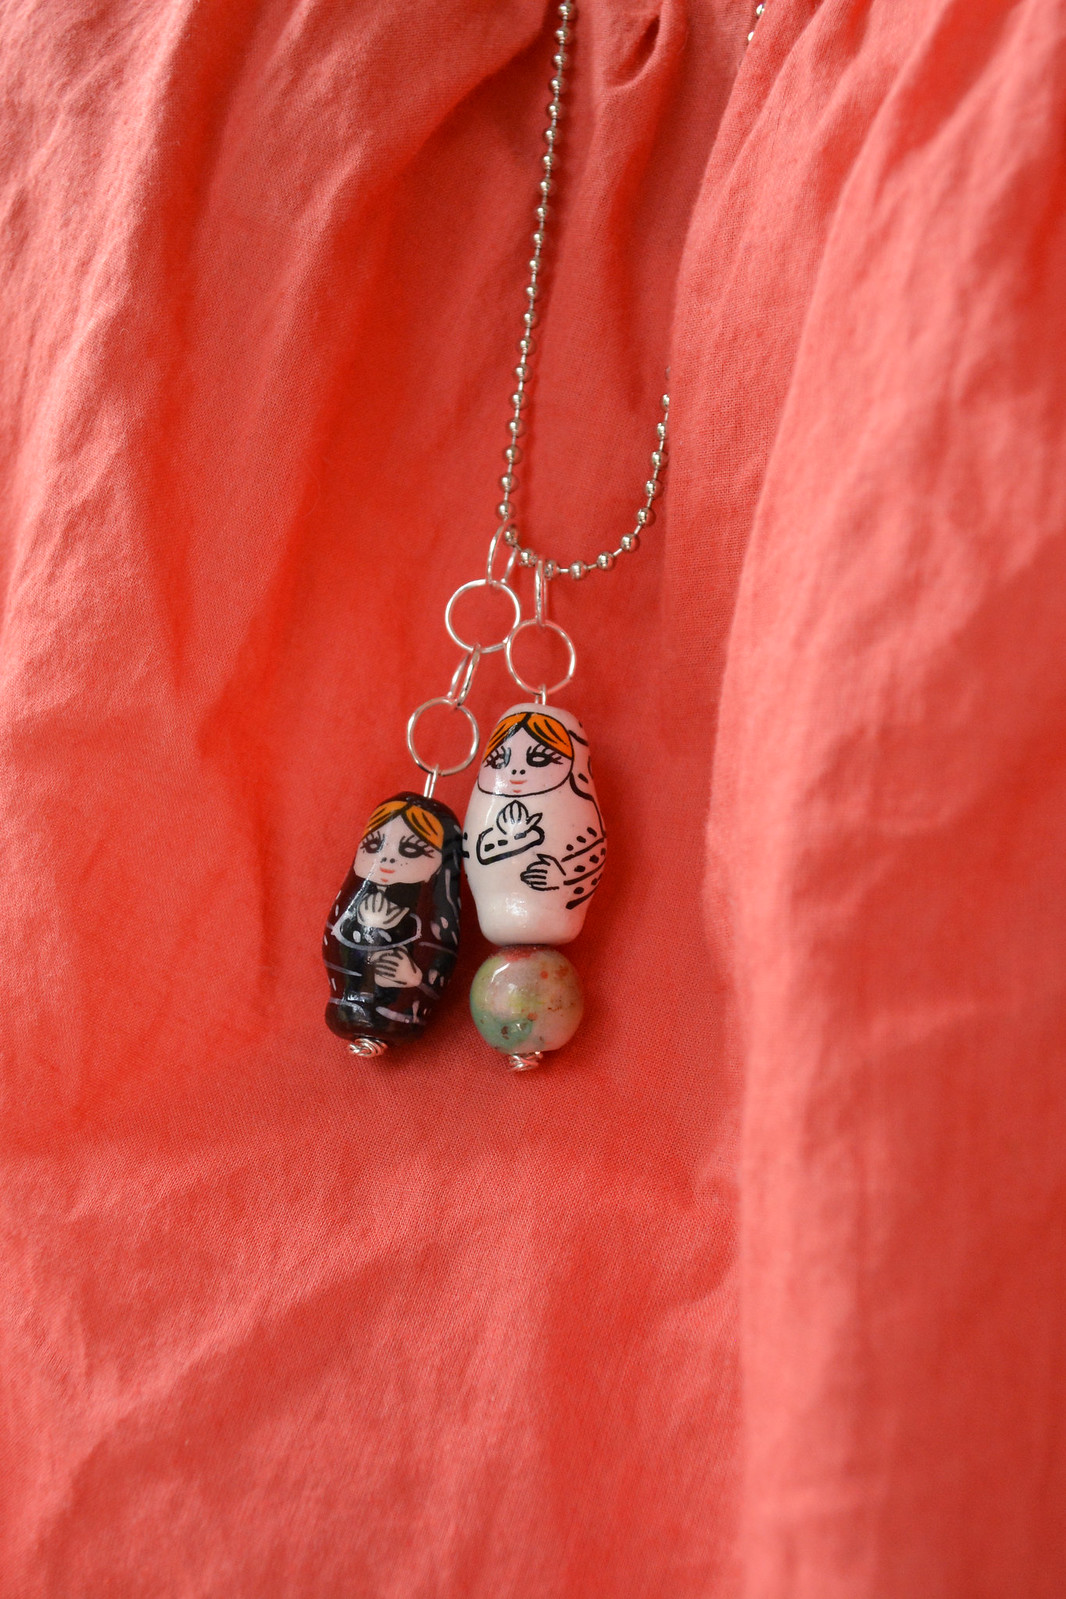 Make a cute, quirky matryoshka doll necklace in just a few simple steps